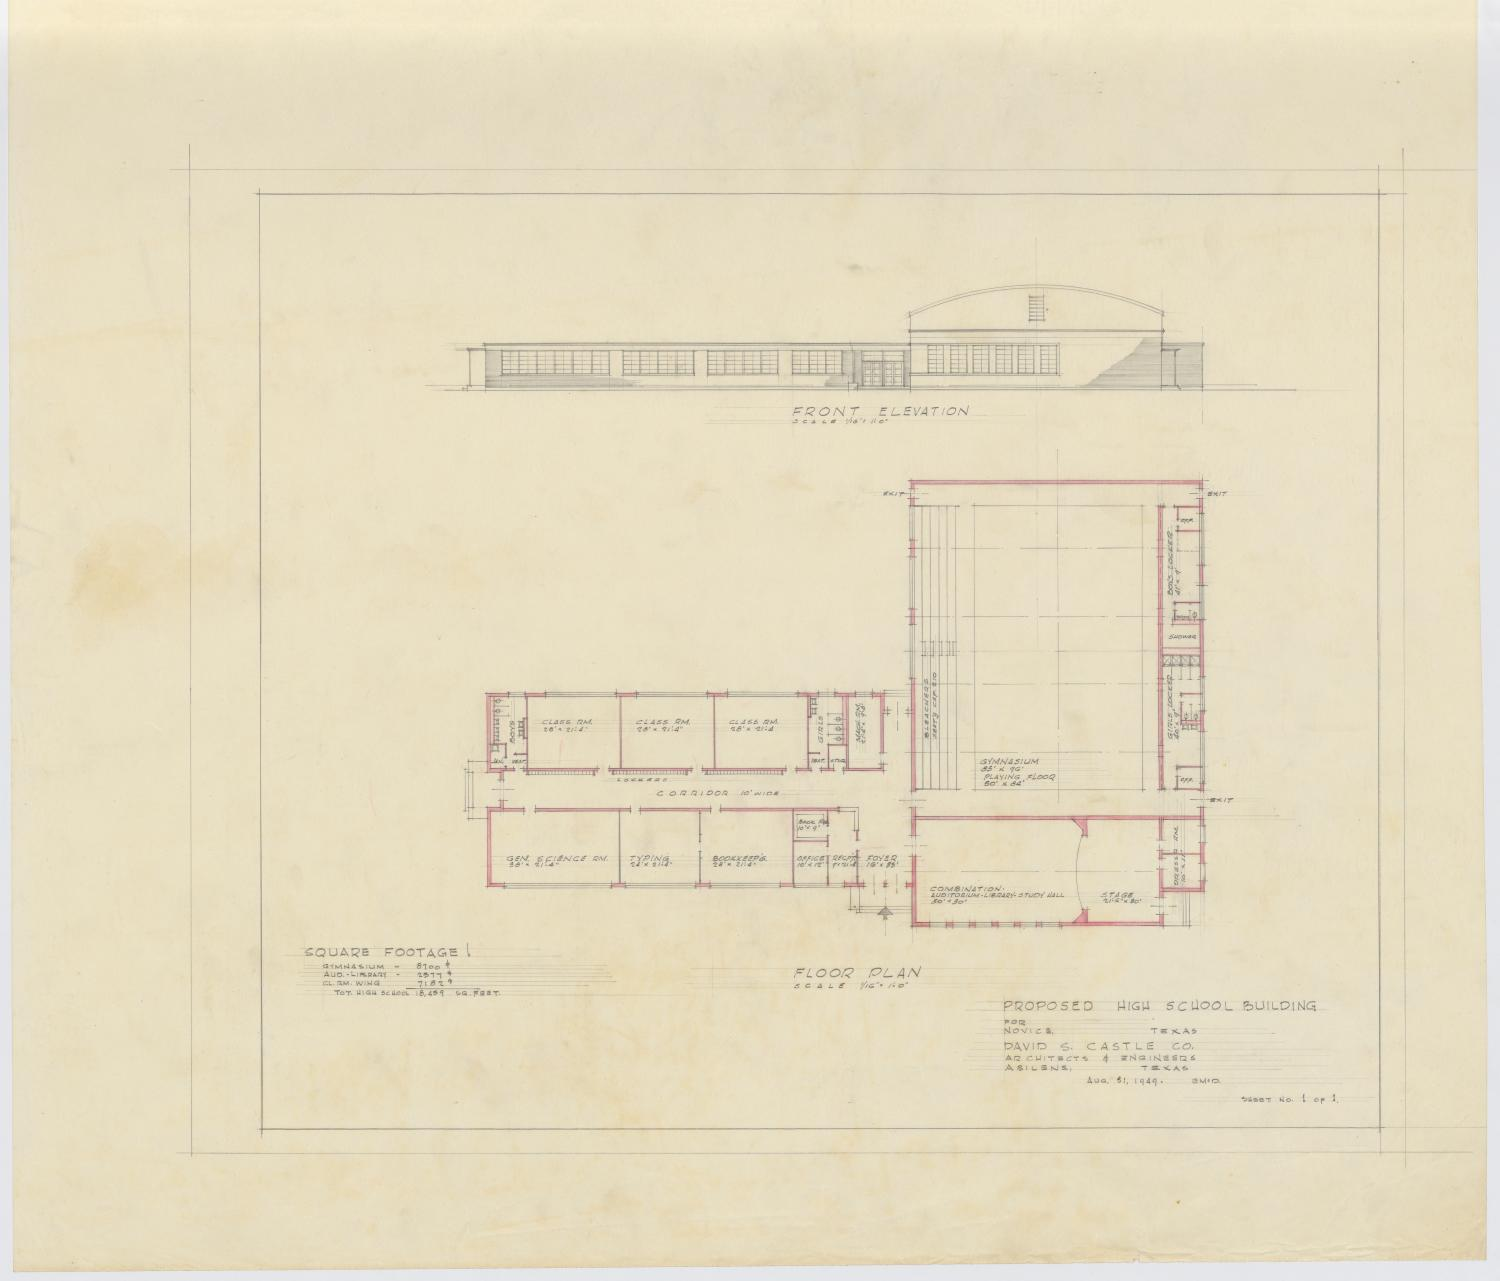 Proposed high school building novice texas floor plan and elevation the portal to texas history